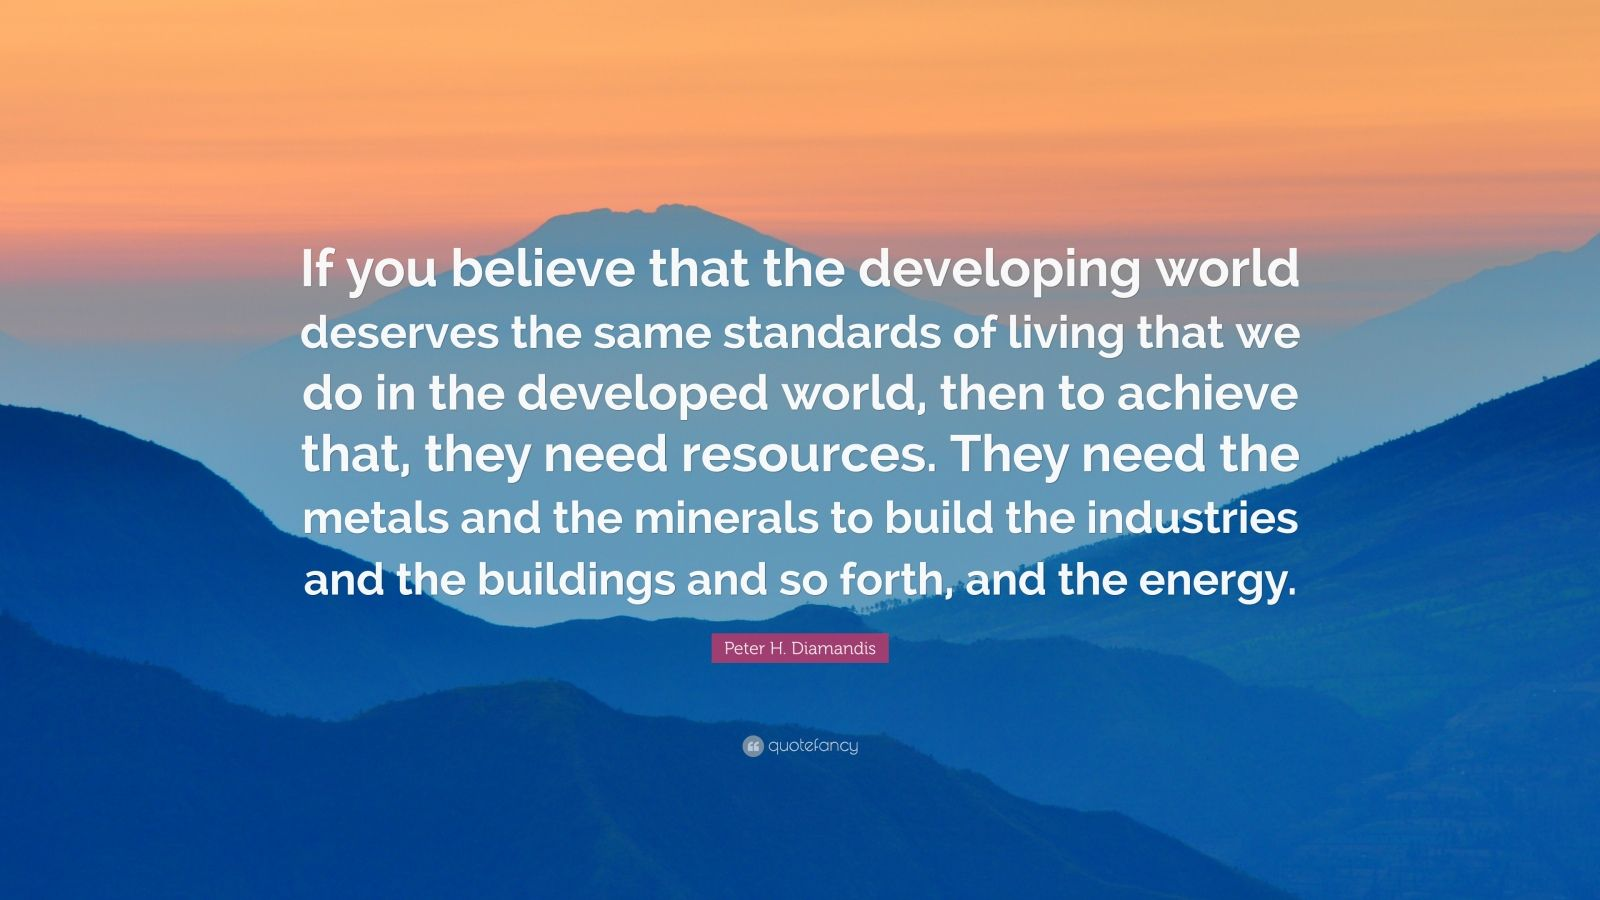 "Peter H. Diamandis Quote: ""If you believe that the developing world deserves the same standards of living that we do in the developed world, then to achieve that, they need resources. They need the metals and the minerals to build the industries and the buildings and so forth, and the energy."""